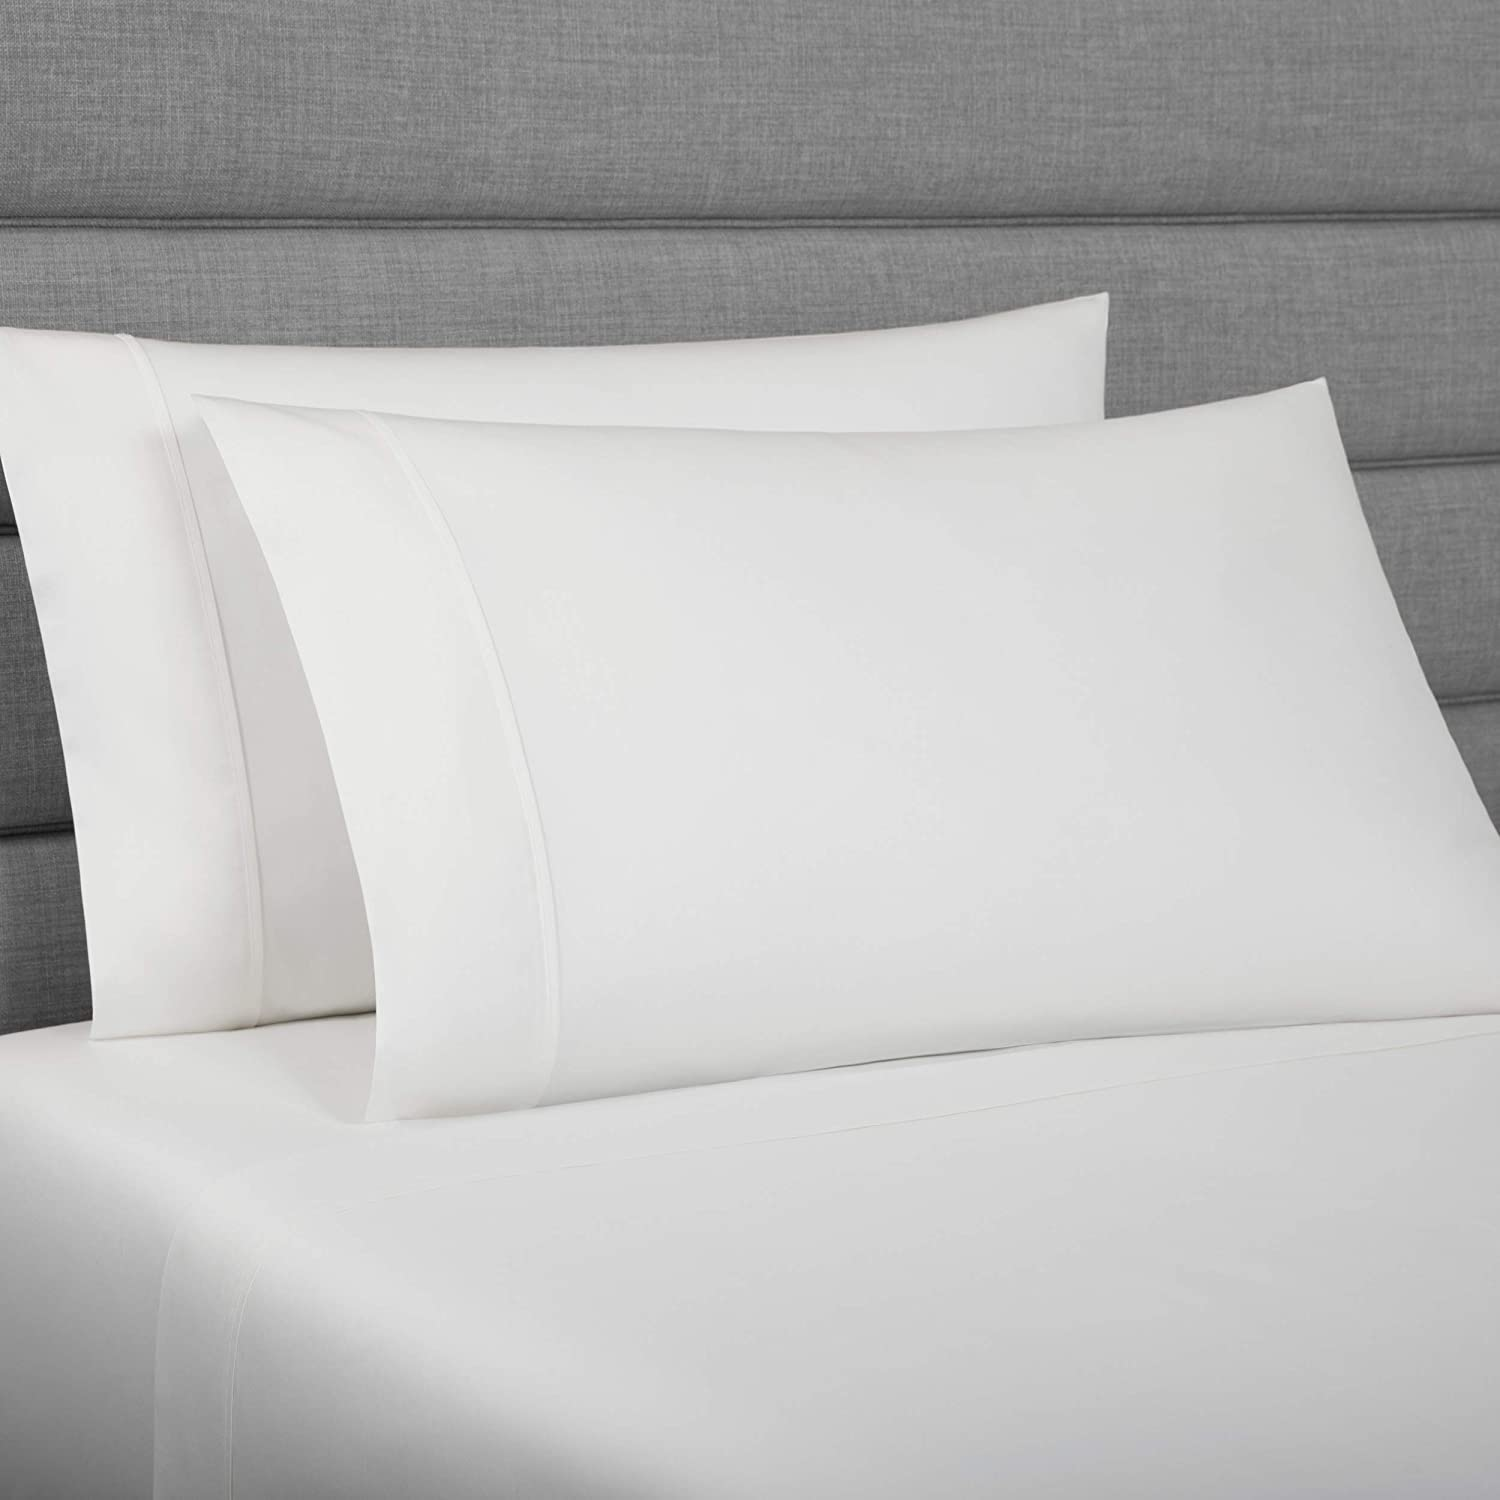 UGG Shani 350 Thread Count Supima Cotton Sateen Fabric Sheet Set, (Snow, Queen)